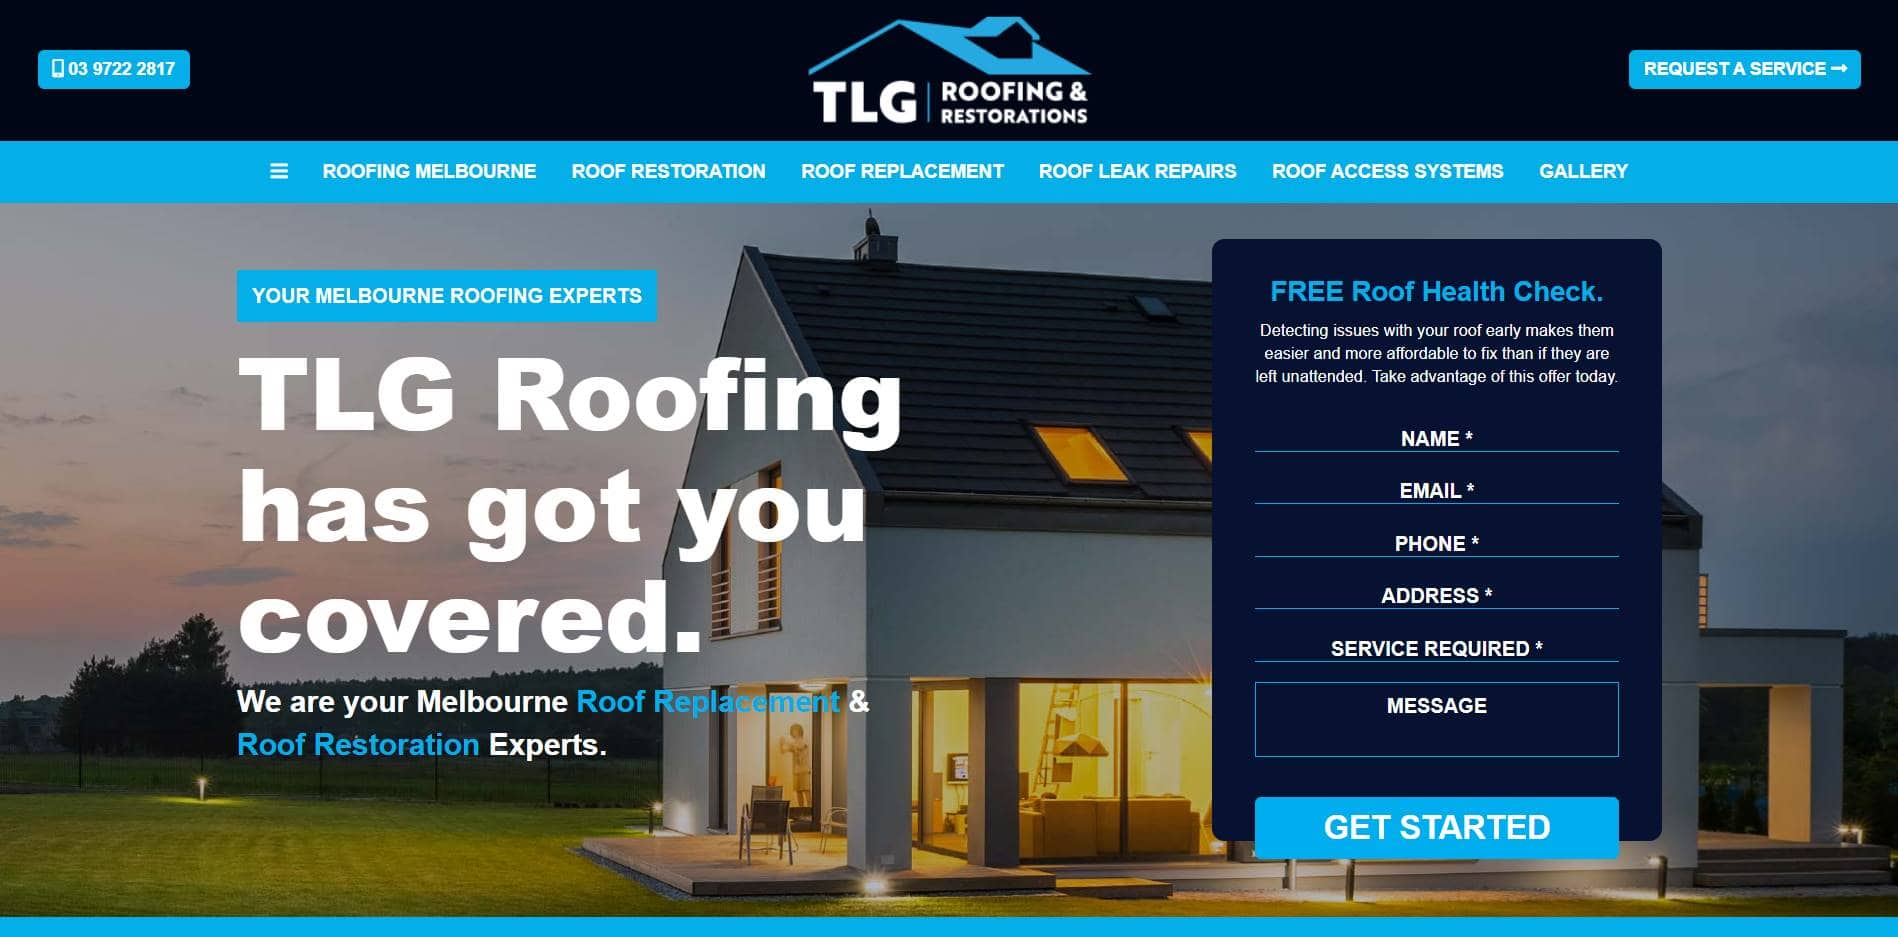 tlg roofing